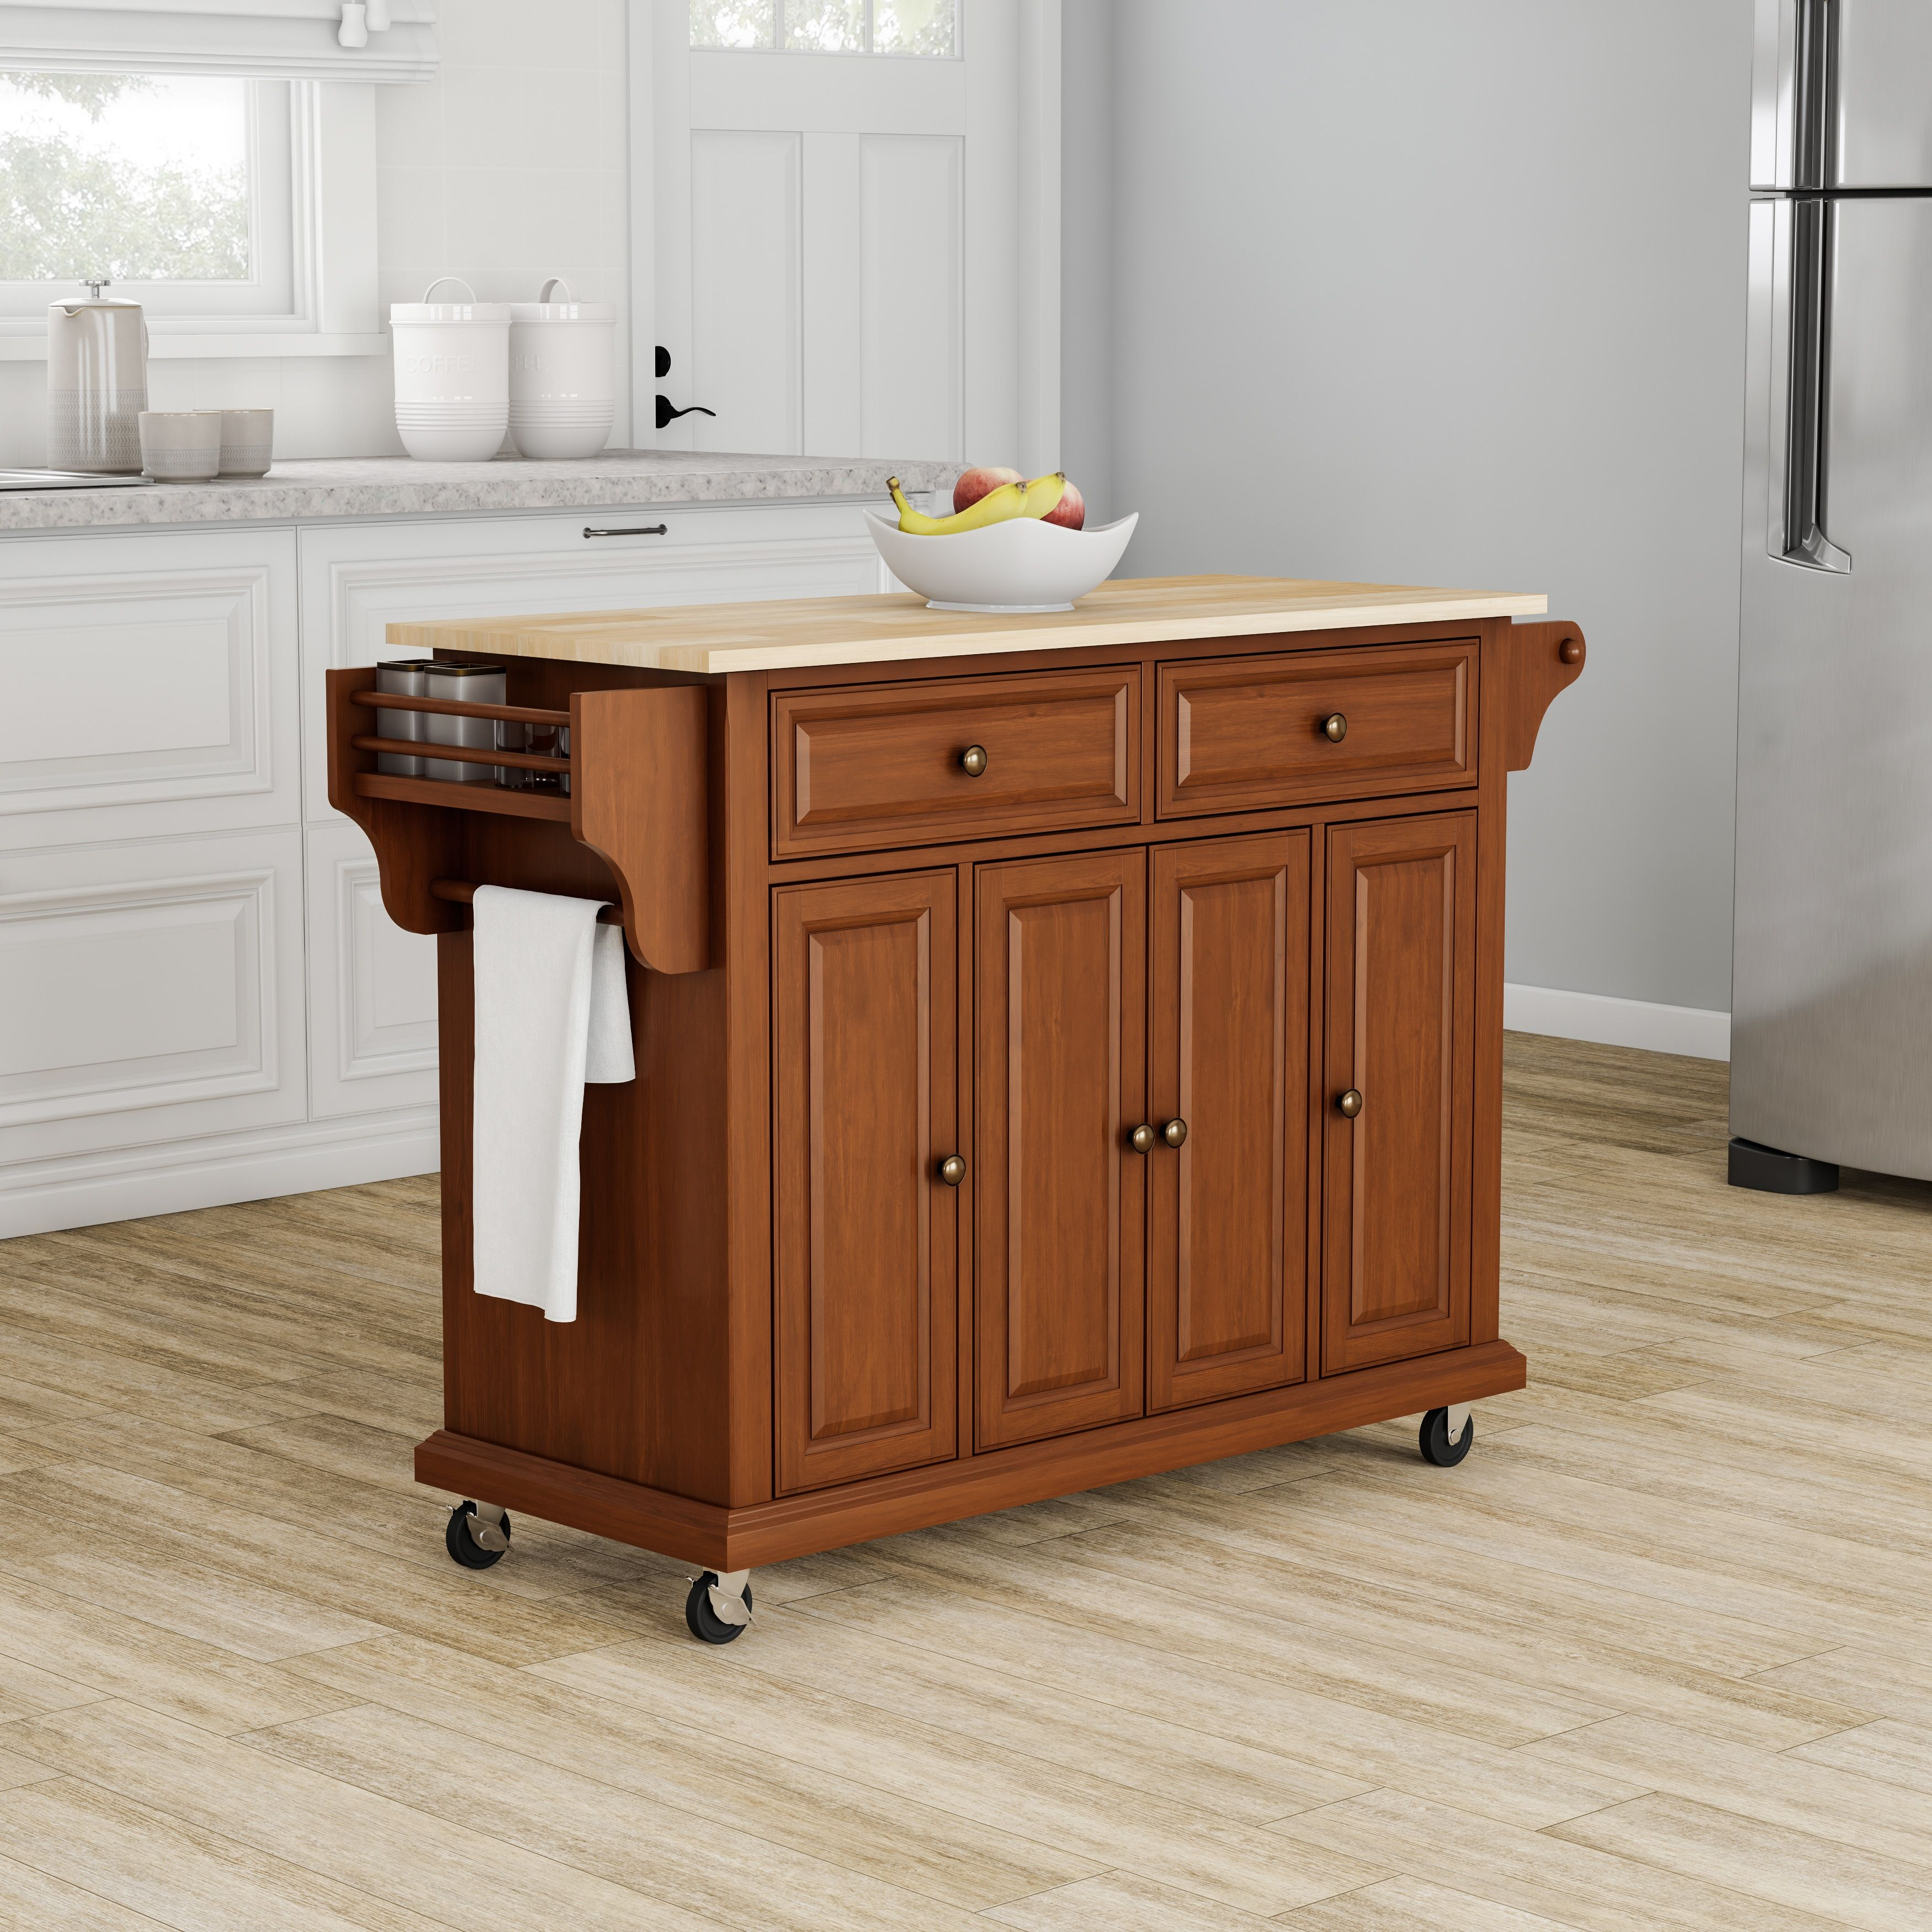 Copper Grove Kanha Natural Wood Top Kitchen Cart Island In